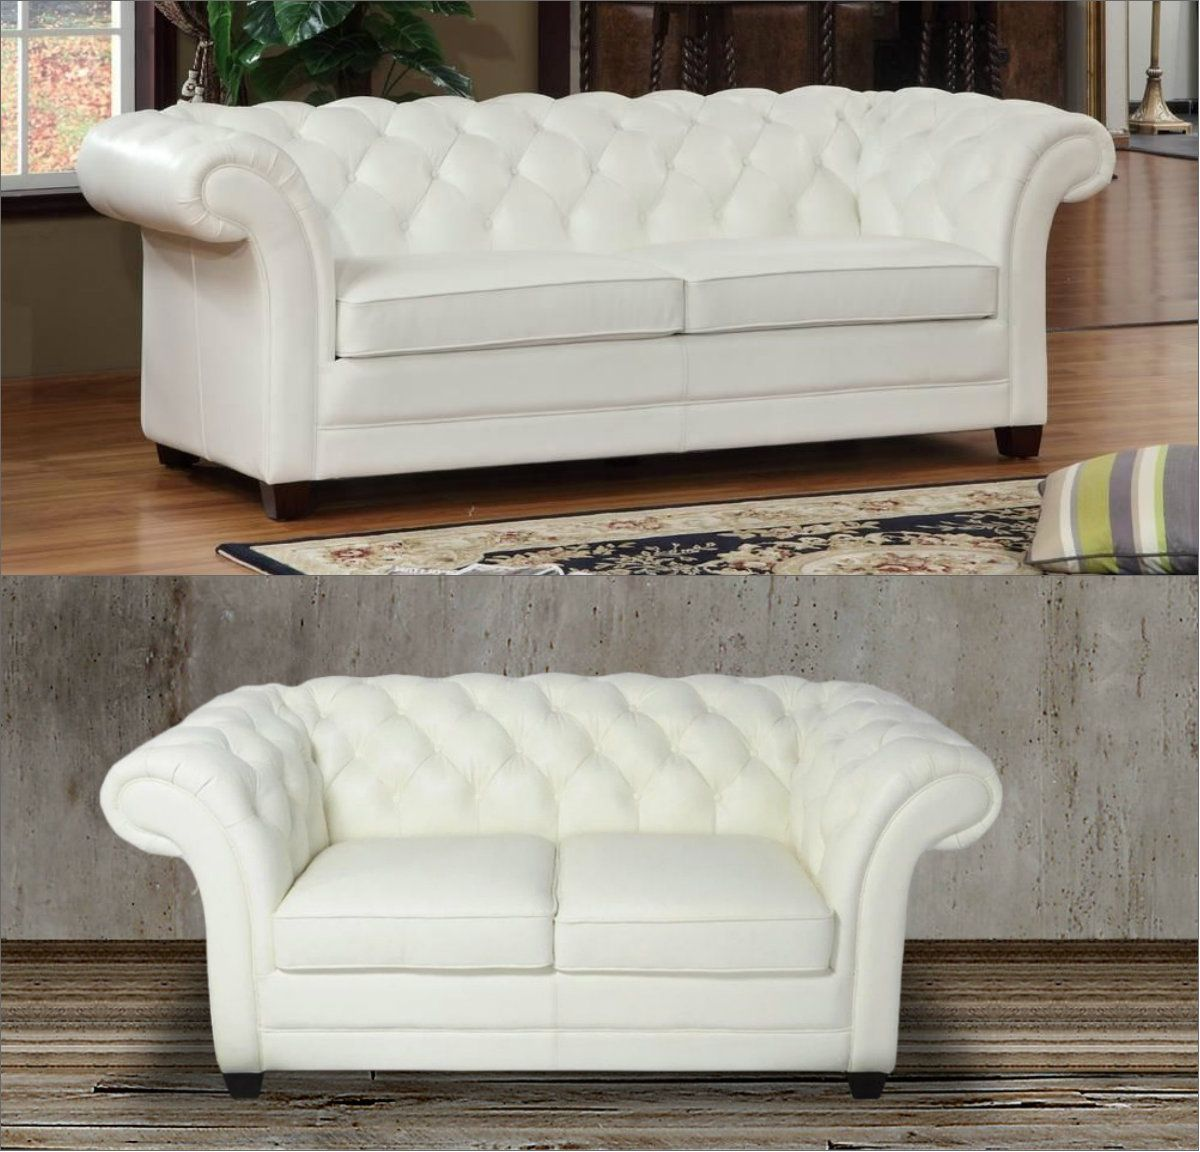 This Luxurious Chesterfield Sofa And Loveseat Set Boasts